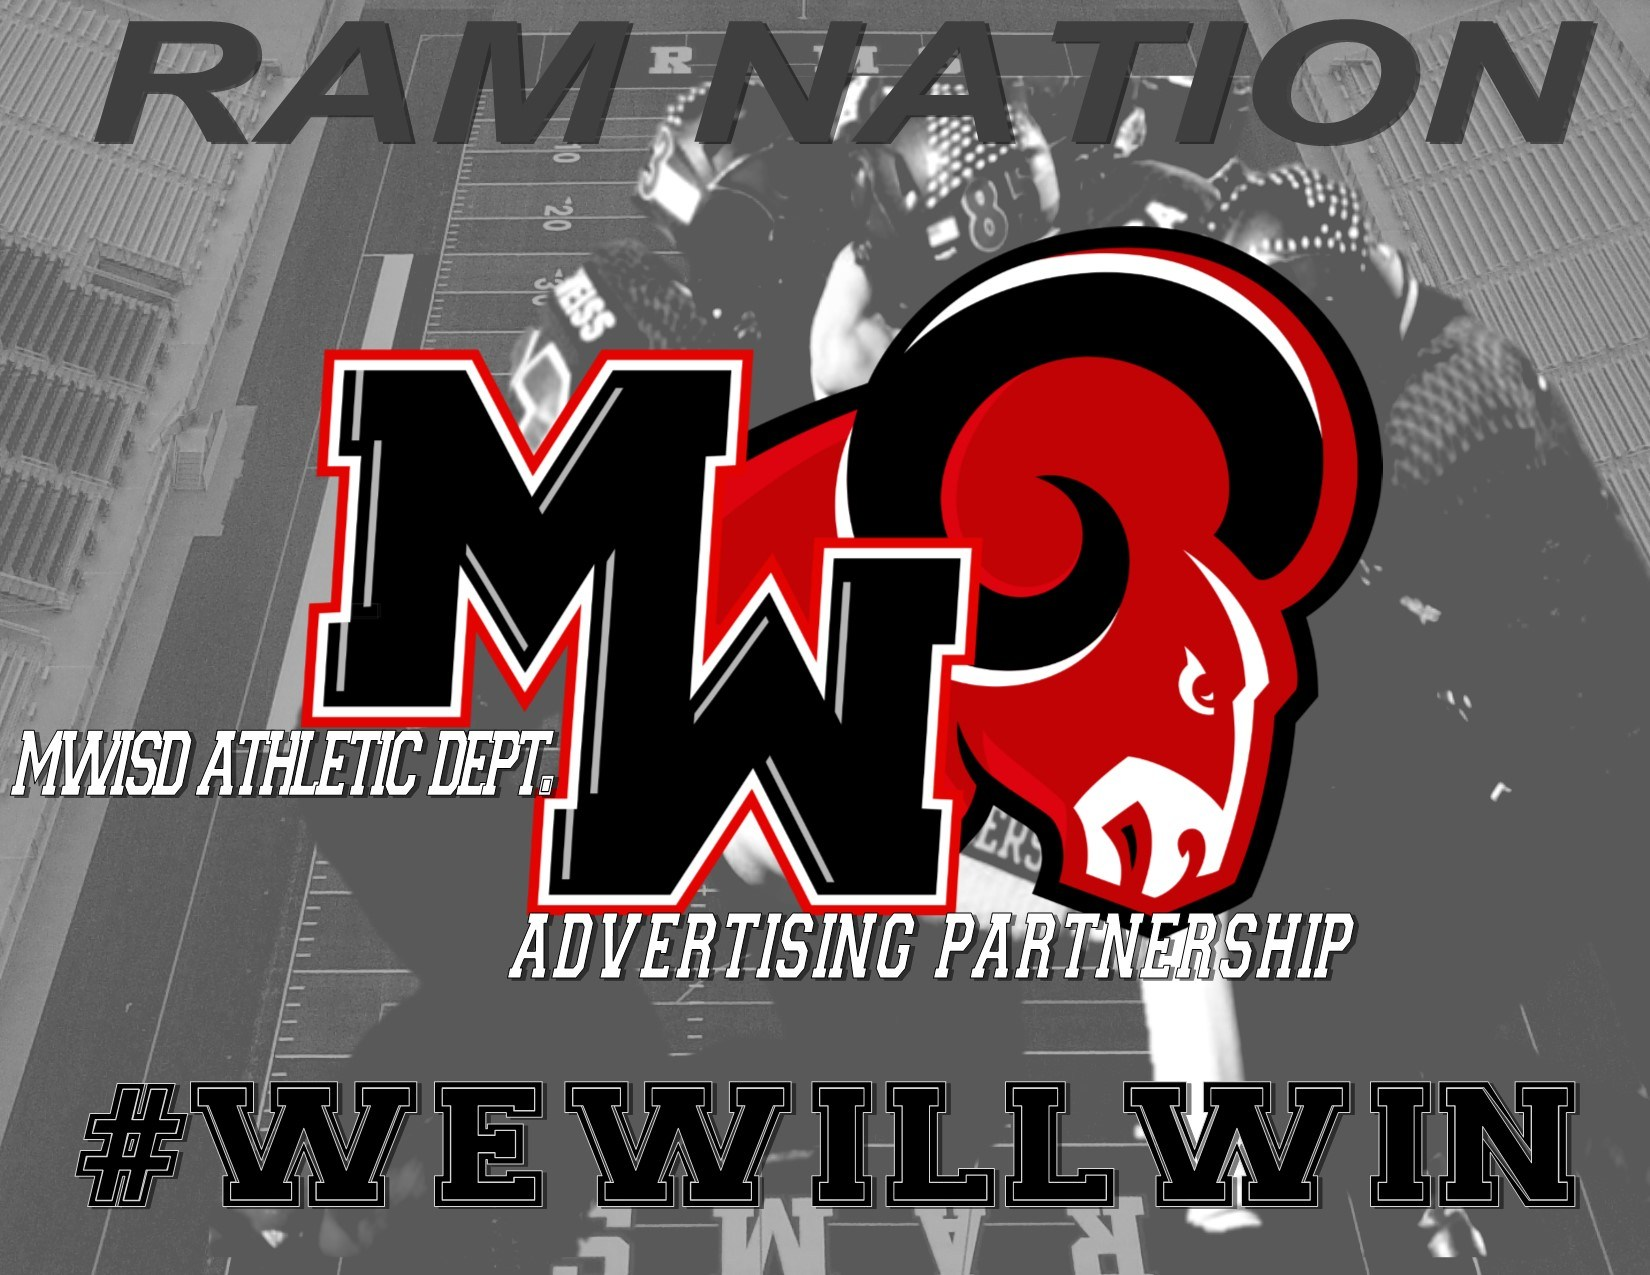 MWISD Athletic Dept advertising logo